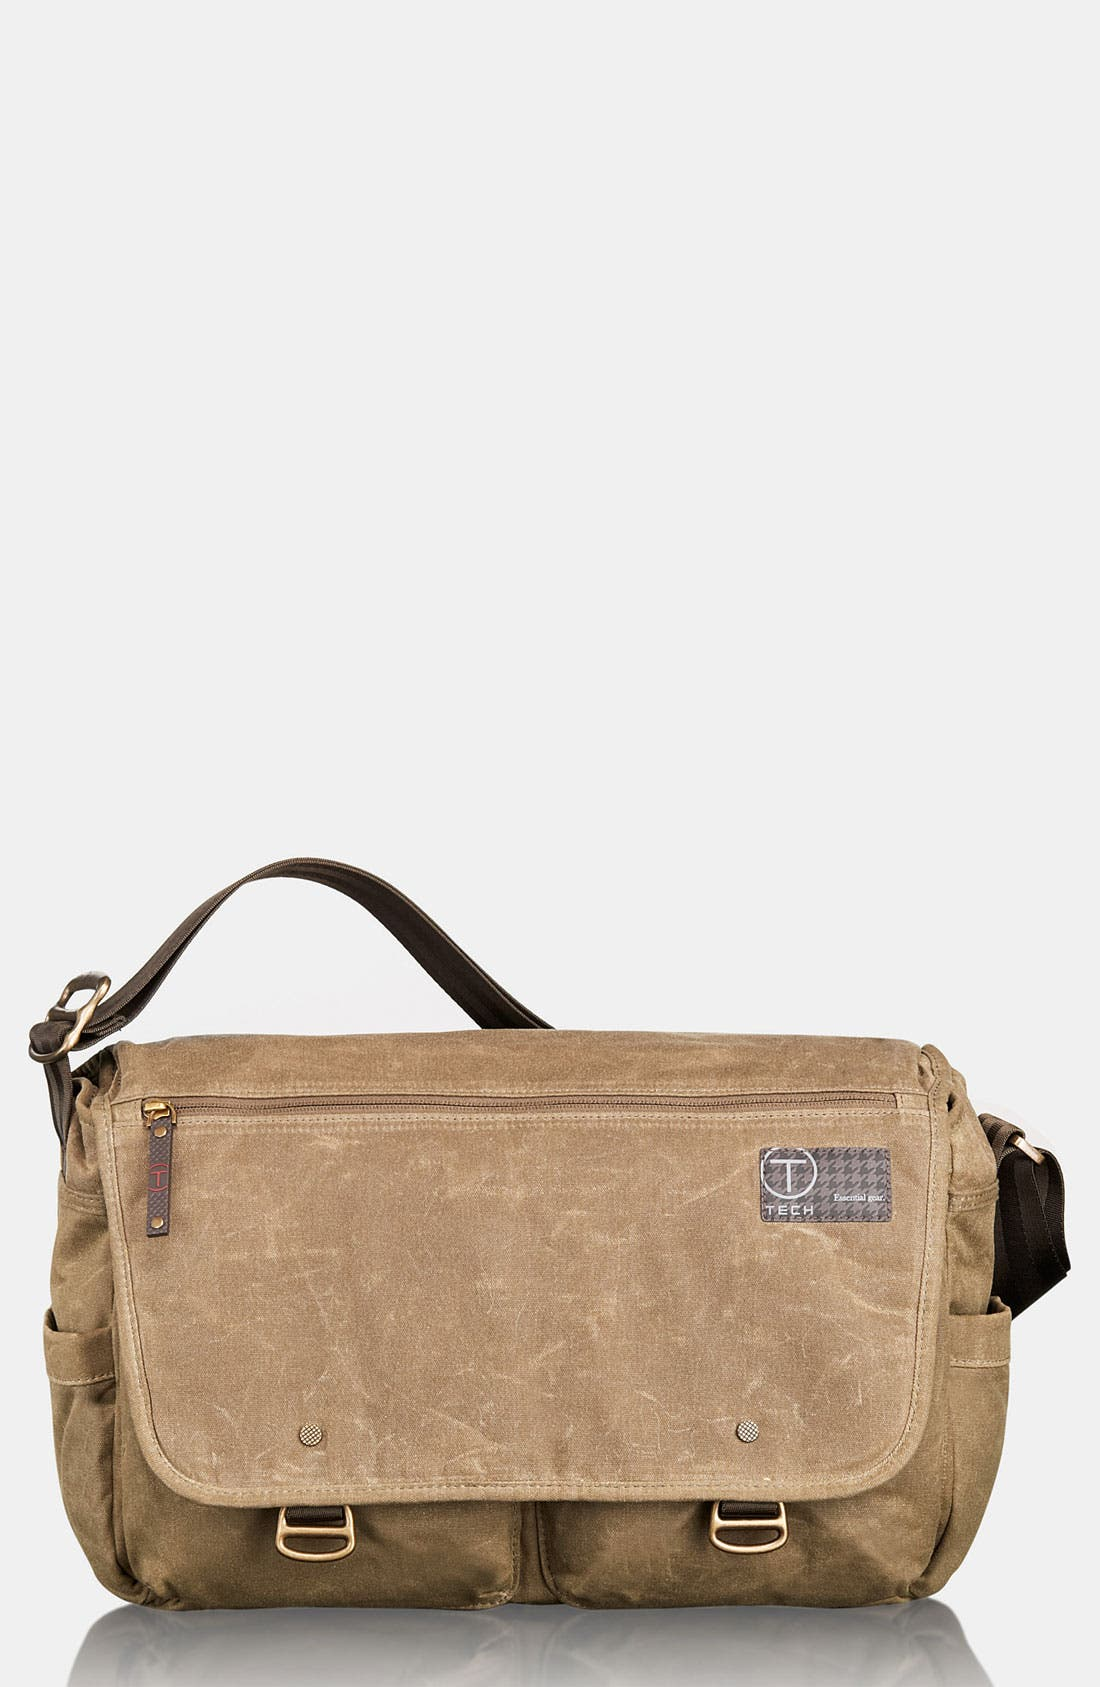 Alternate Image 1 Selected - T-Tech by Tumi 'Icon Hans' Laptop Messenger Bag